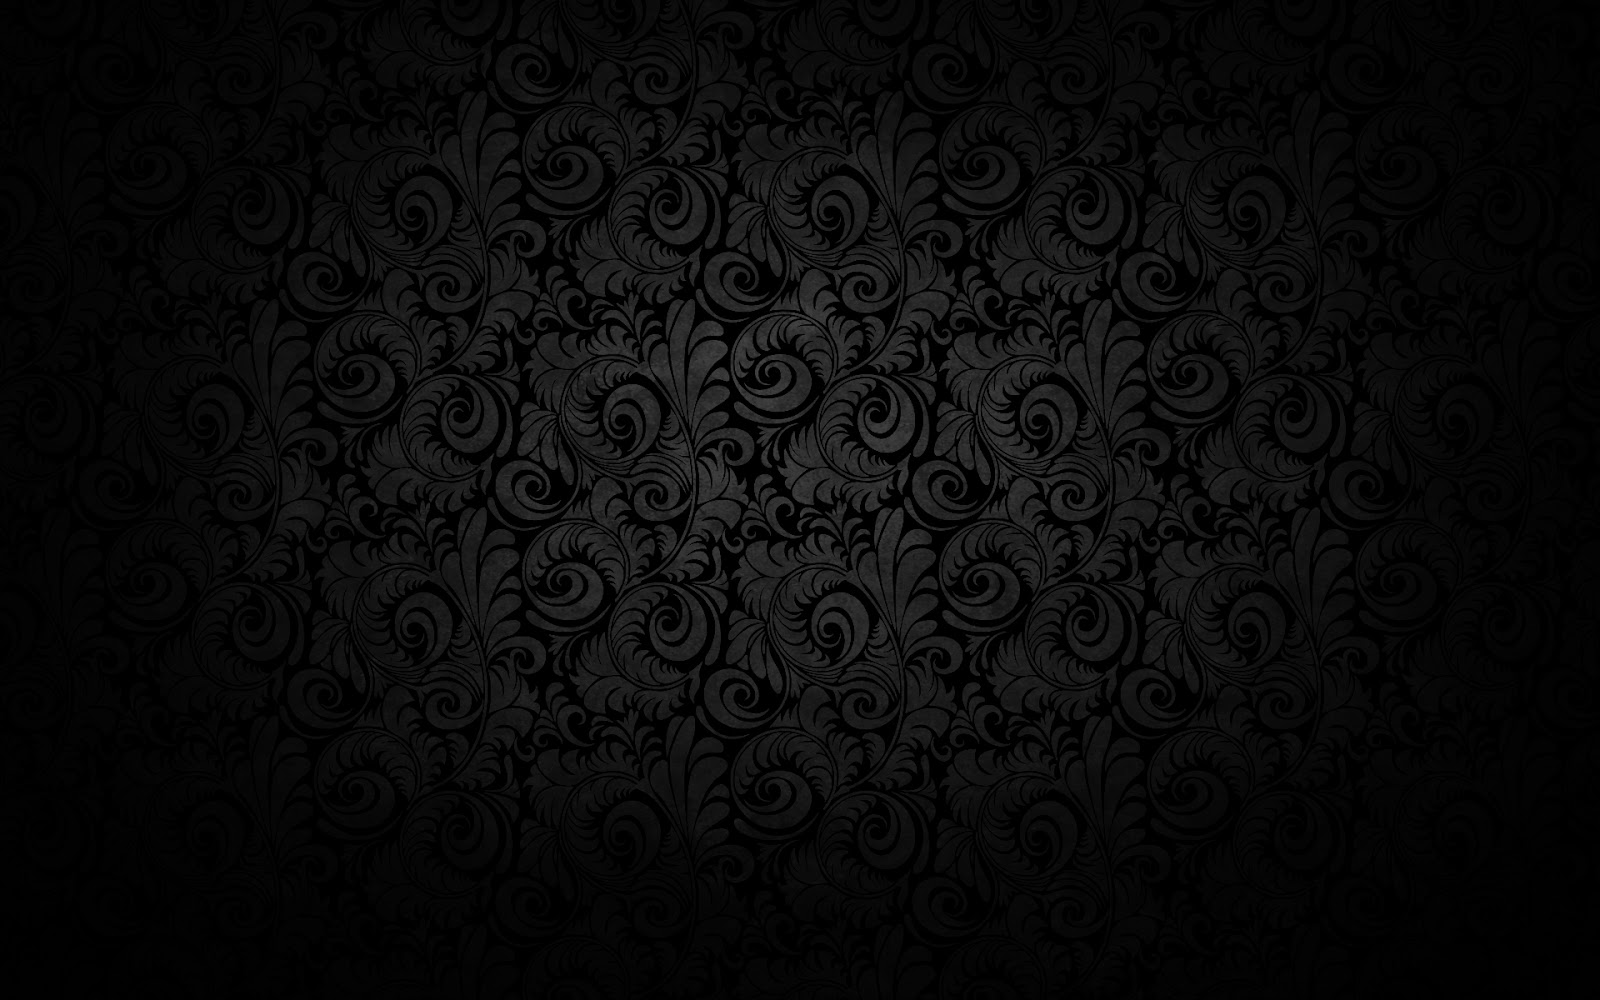 Dark textured background design patterns website images for Dark pattern background